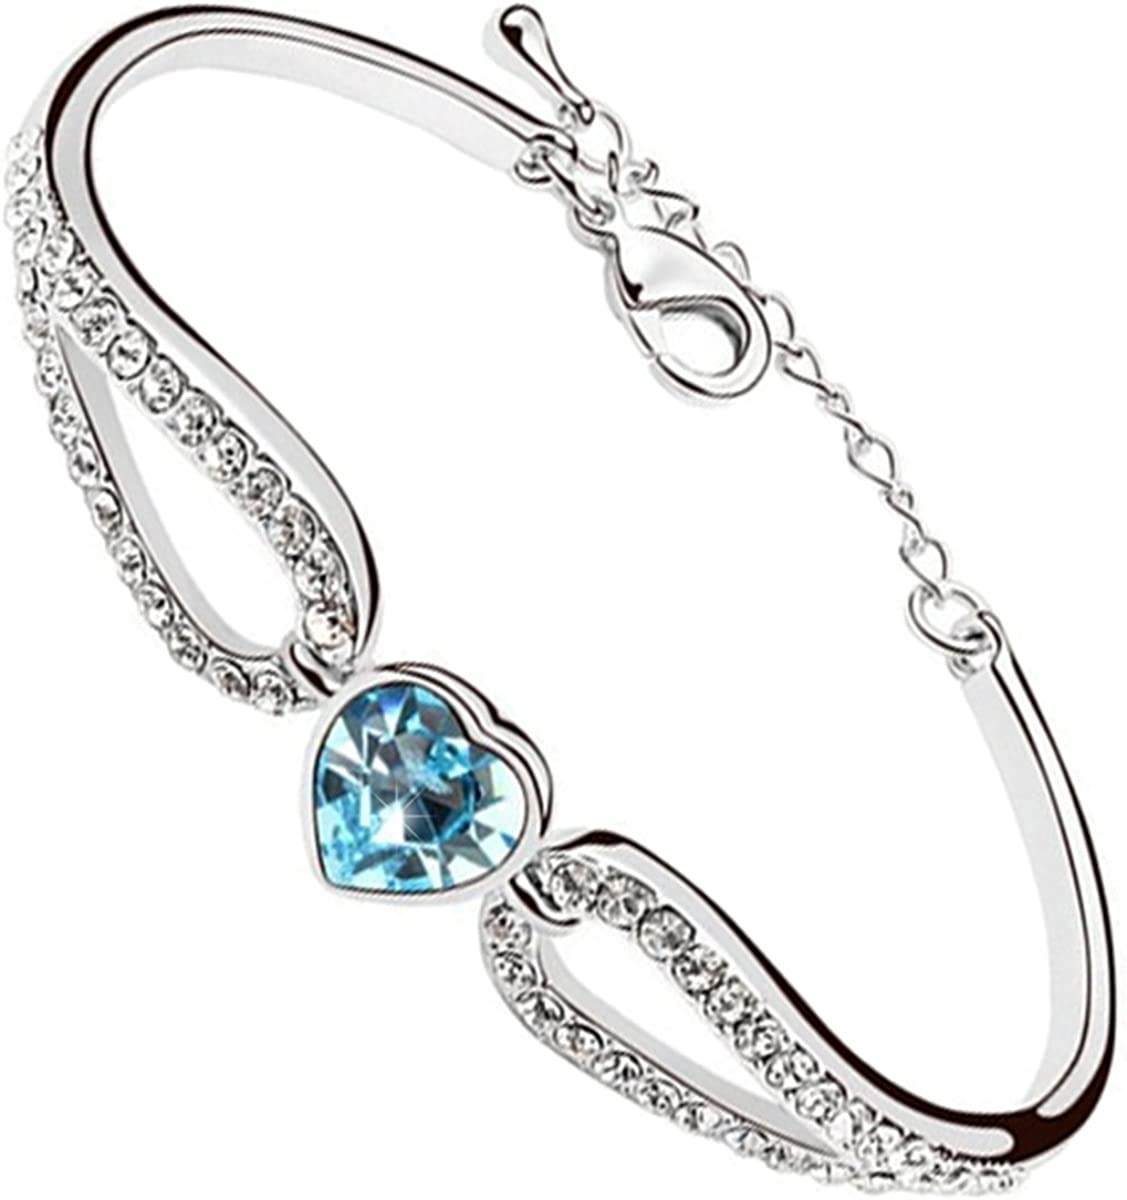 Amazon.com: GWG Women's Bracelets Gift Sterling Silver Plated Aquamarine  Sea Blue Heart Crystal Hold with Cuff Bands Embellished with White  Sparkling Stones Love Bracelet for Women: Jewelry